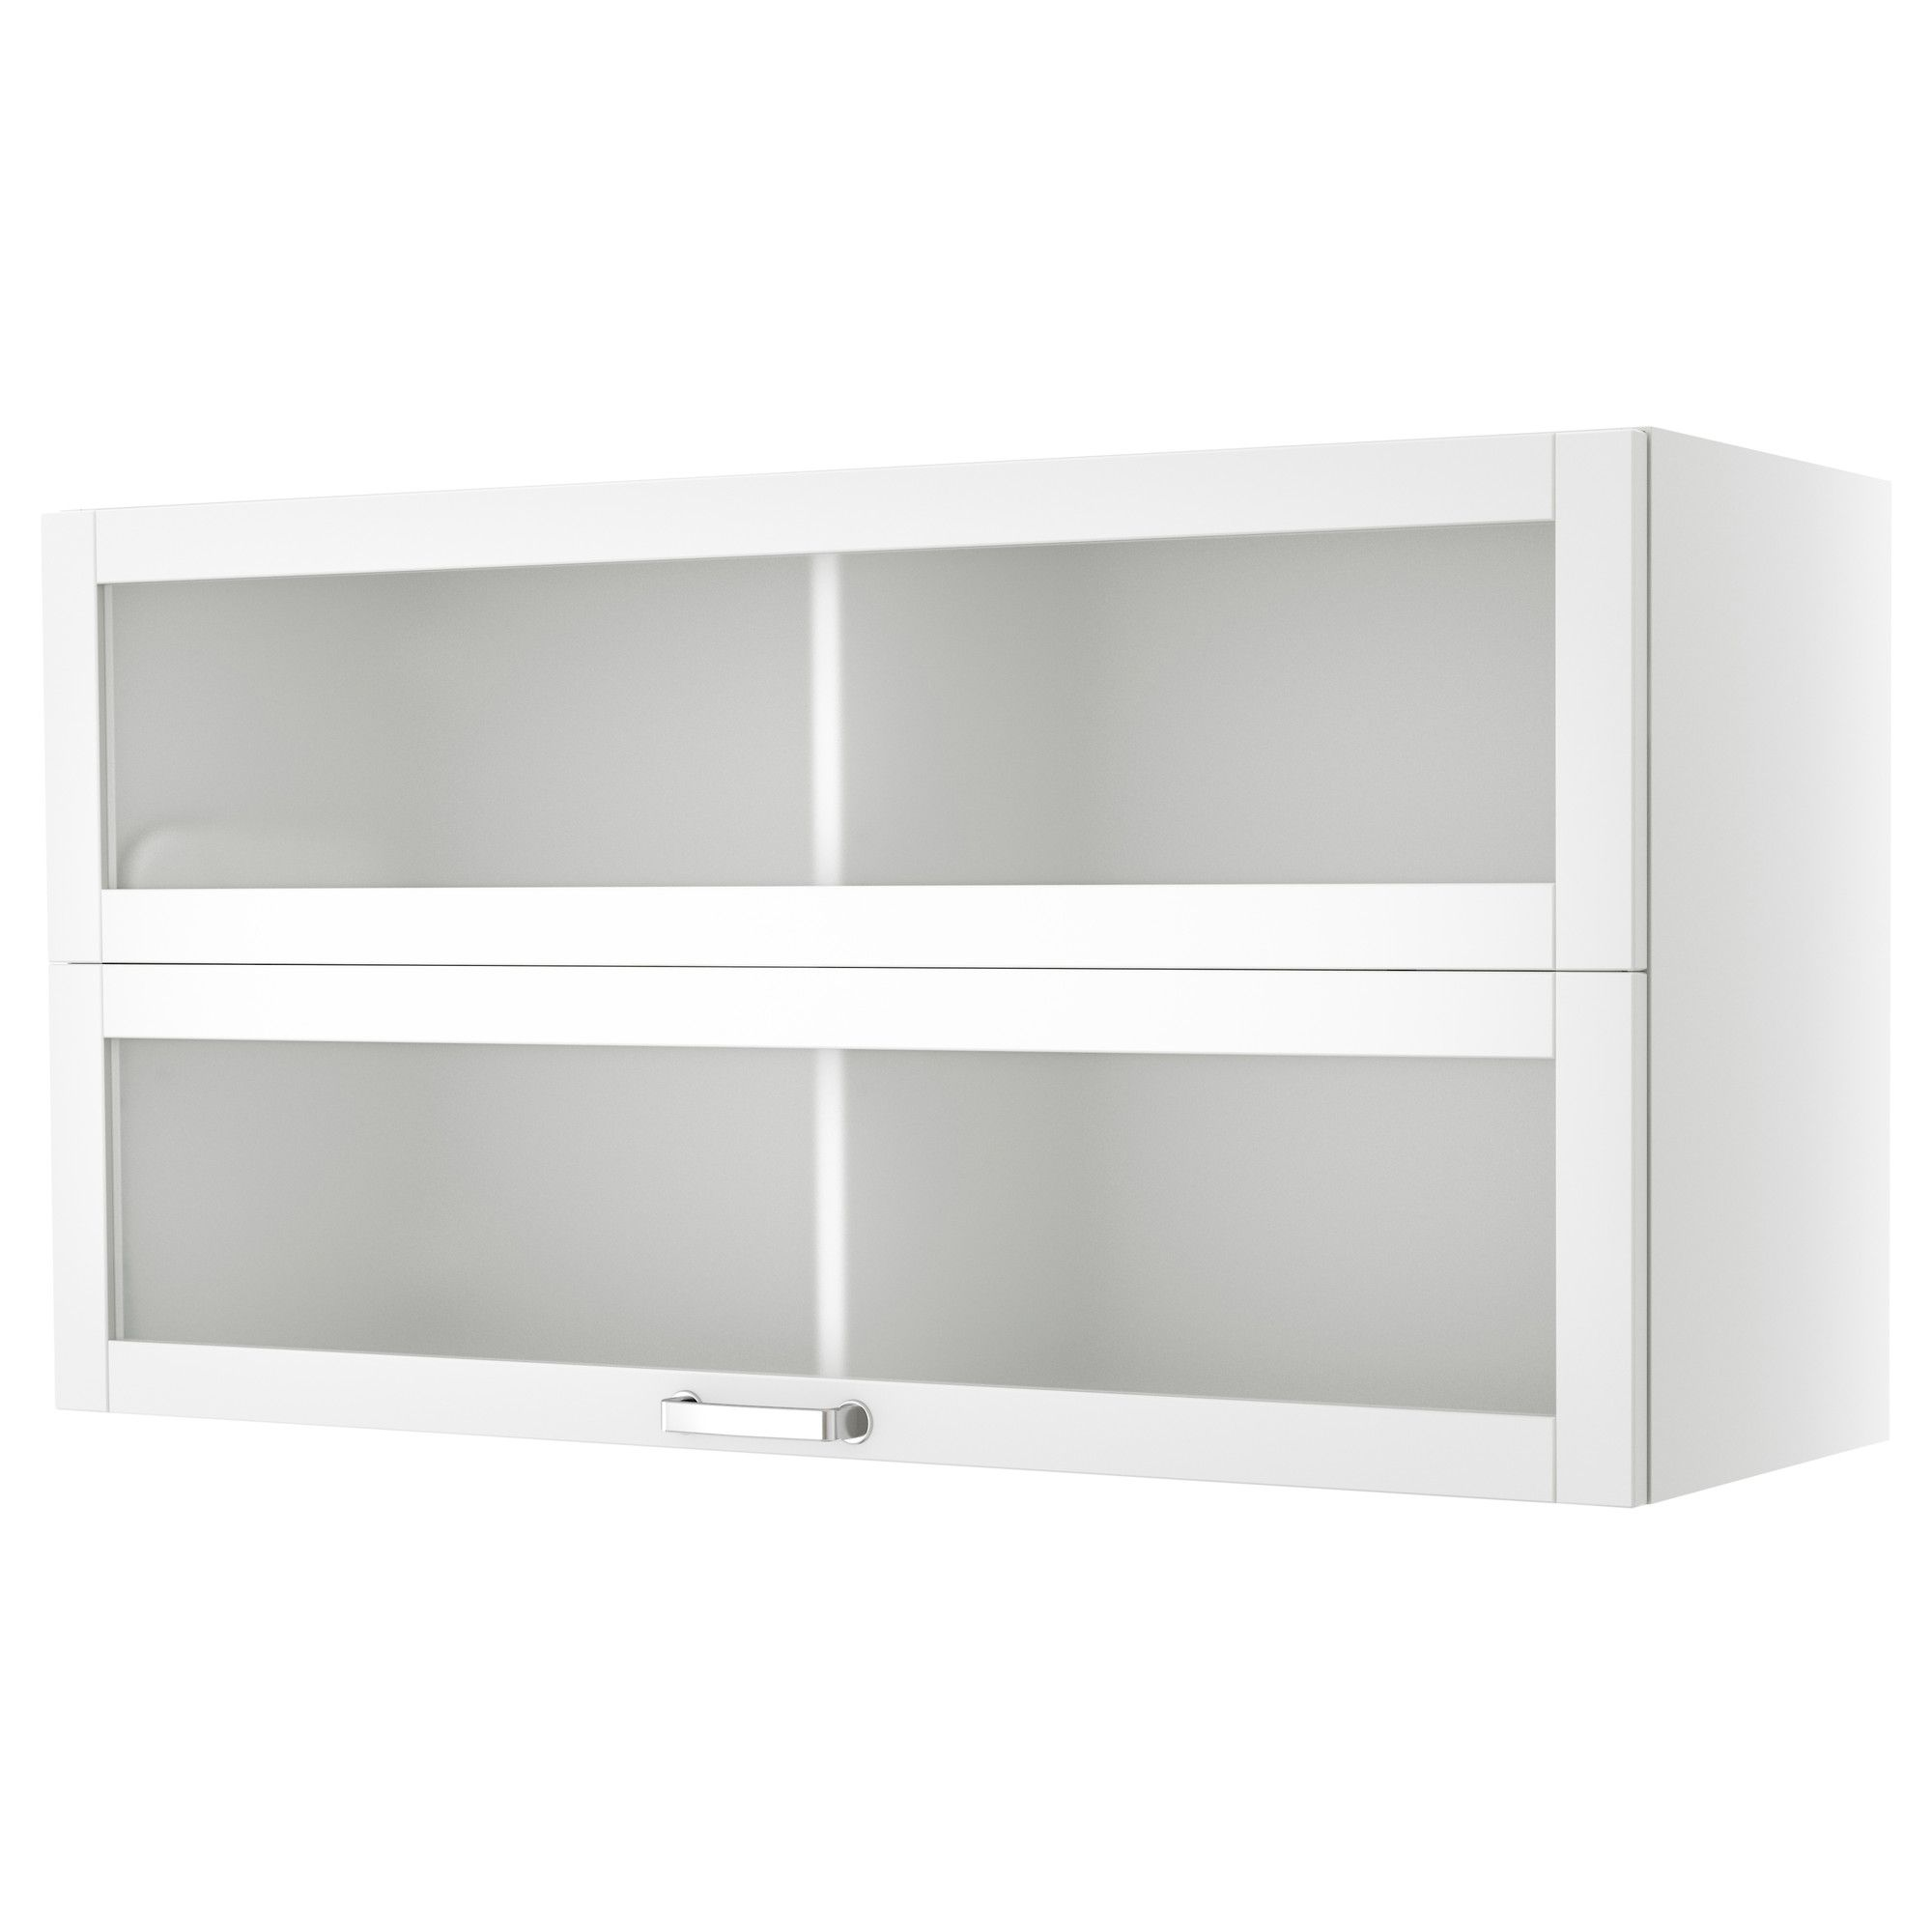 Ikea Us Furniture And Home Furnishings Ikea Kitchen Wall Cabinets Glass Cabinet Doors Wall Cabinet